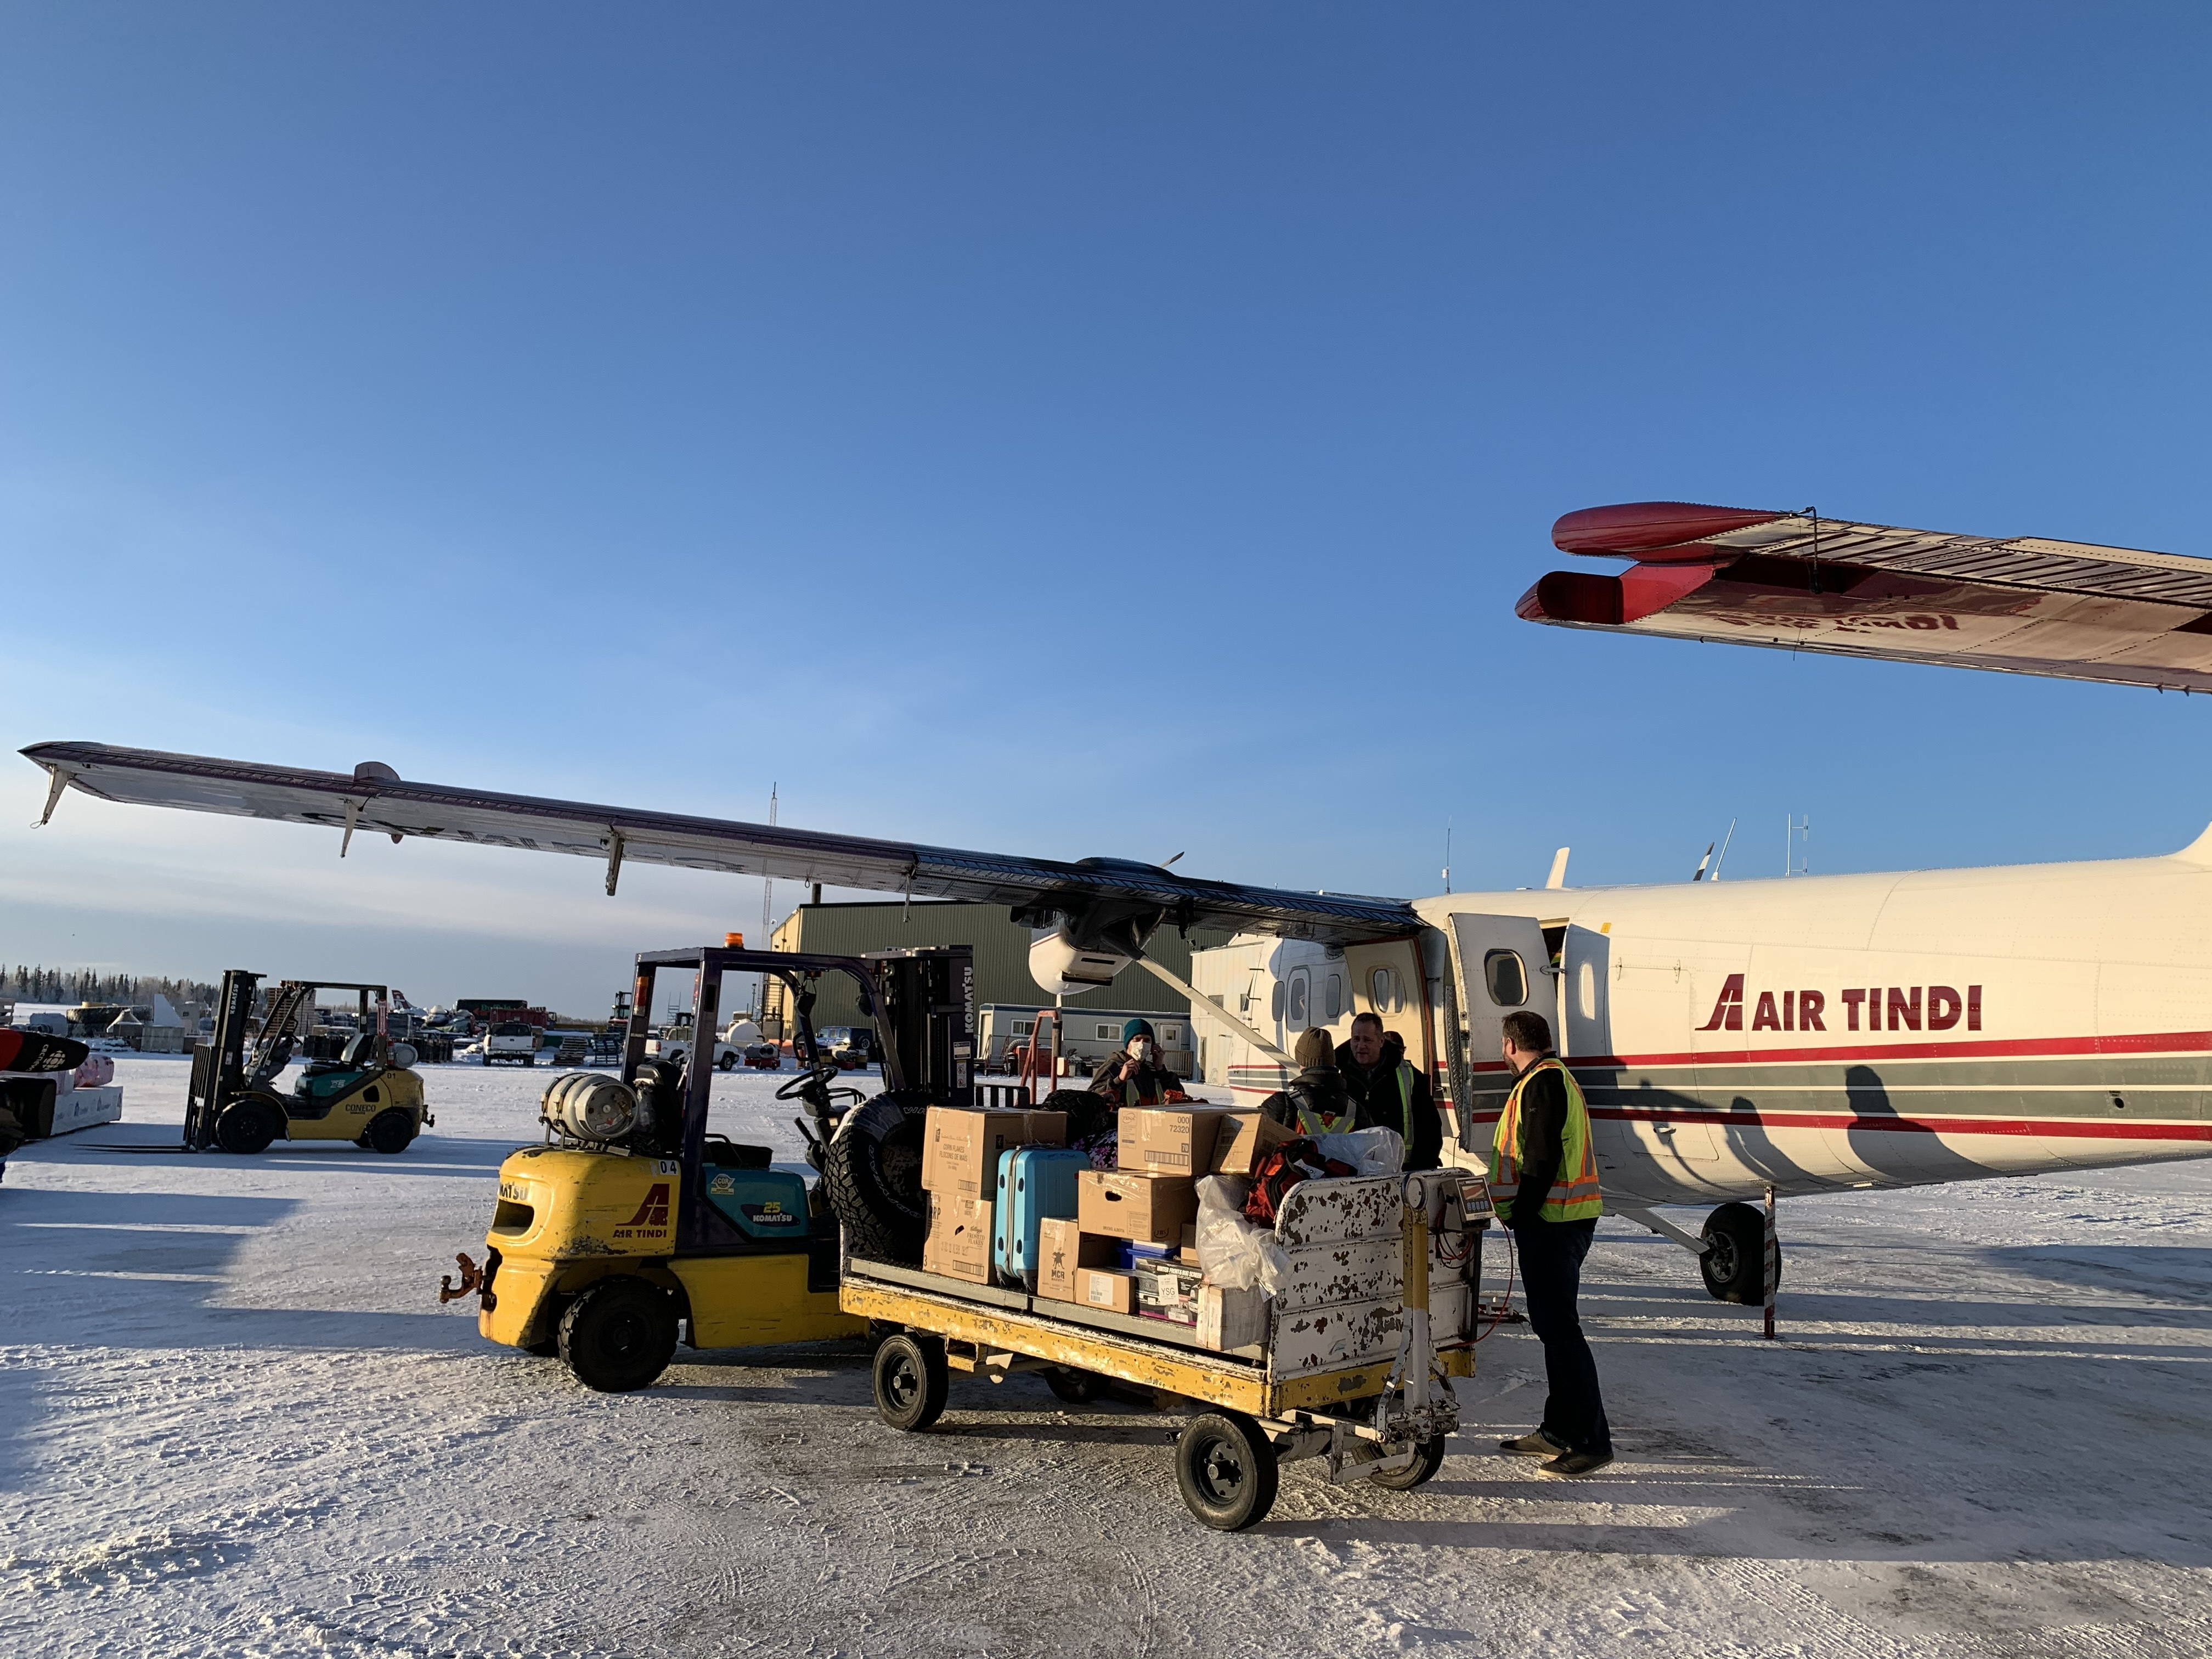 Air Tindi workers load a plane with cargo, which at times has included vehicle parts, building materials, or even livestock. (Sidney Cohen/CBC)